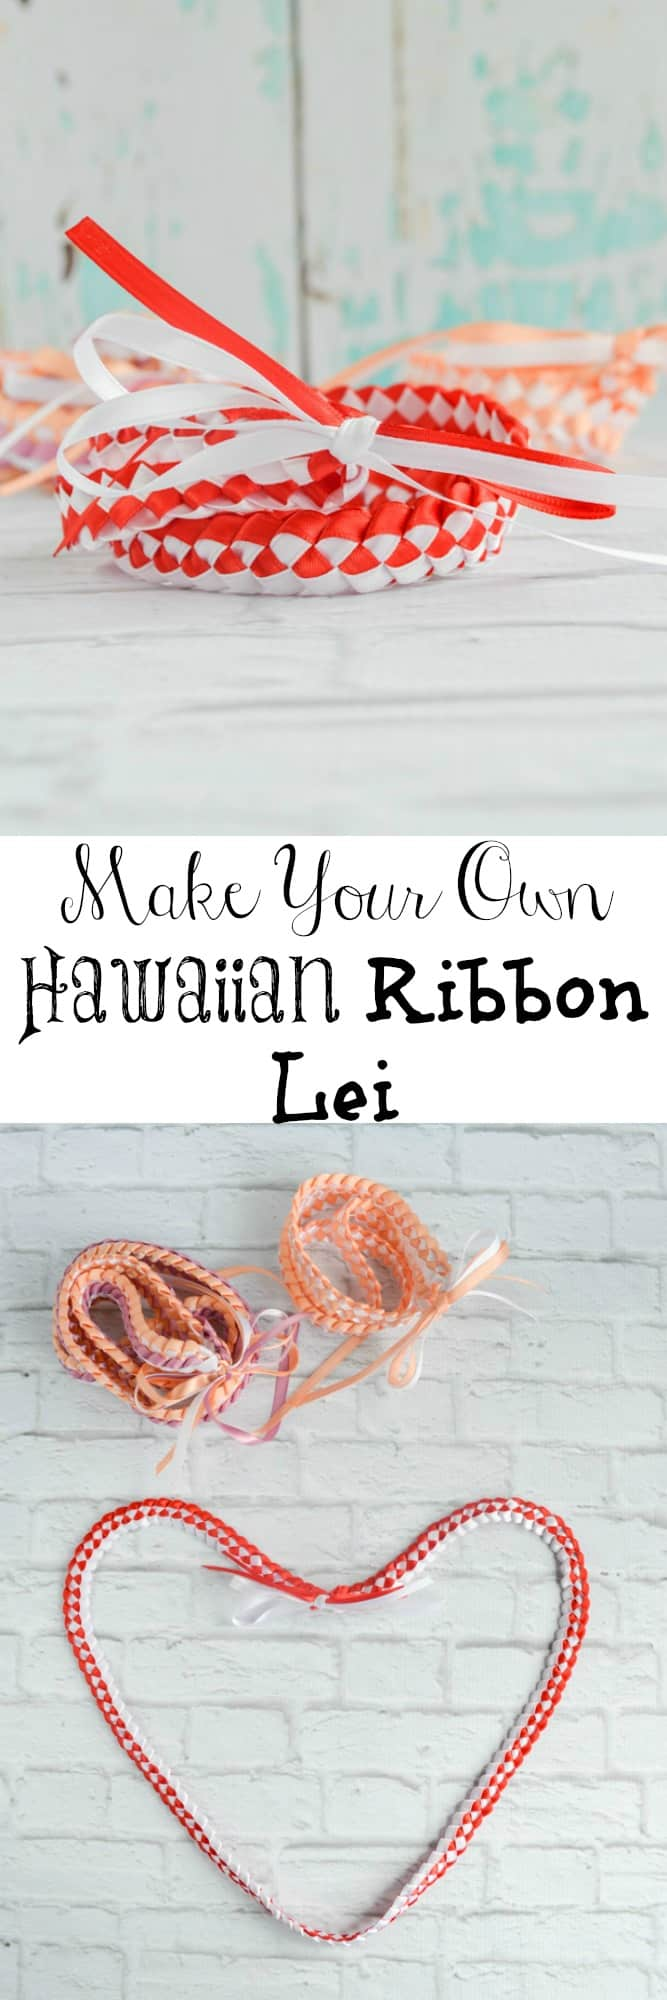 Make your own Hawaiian Ribbon lei